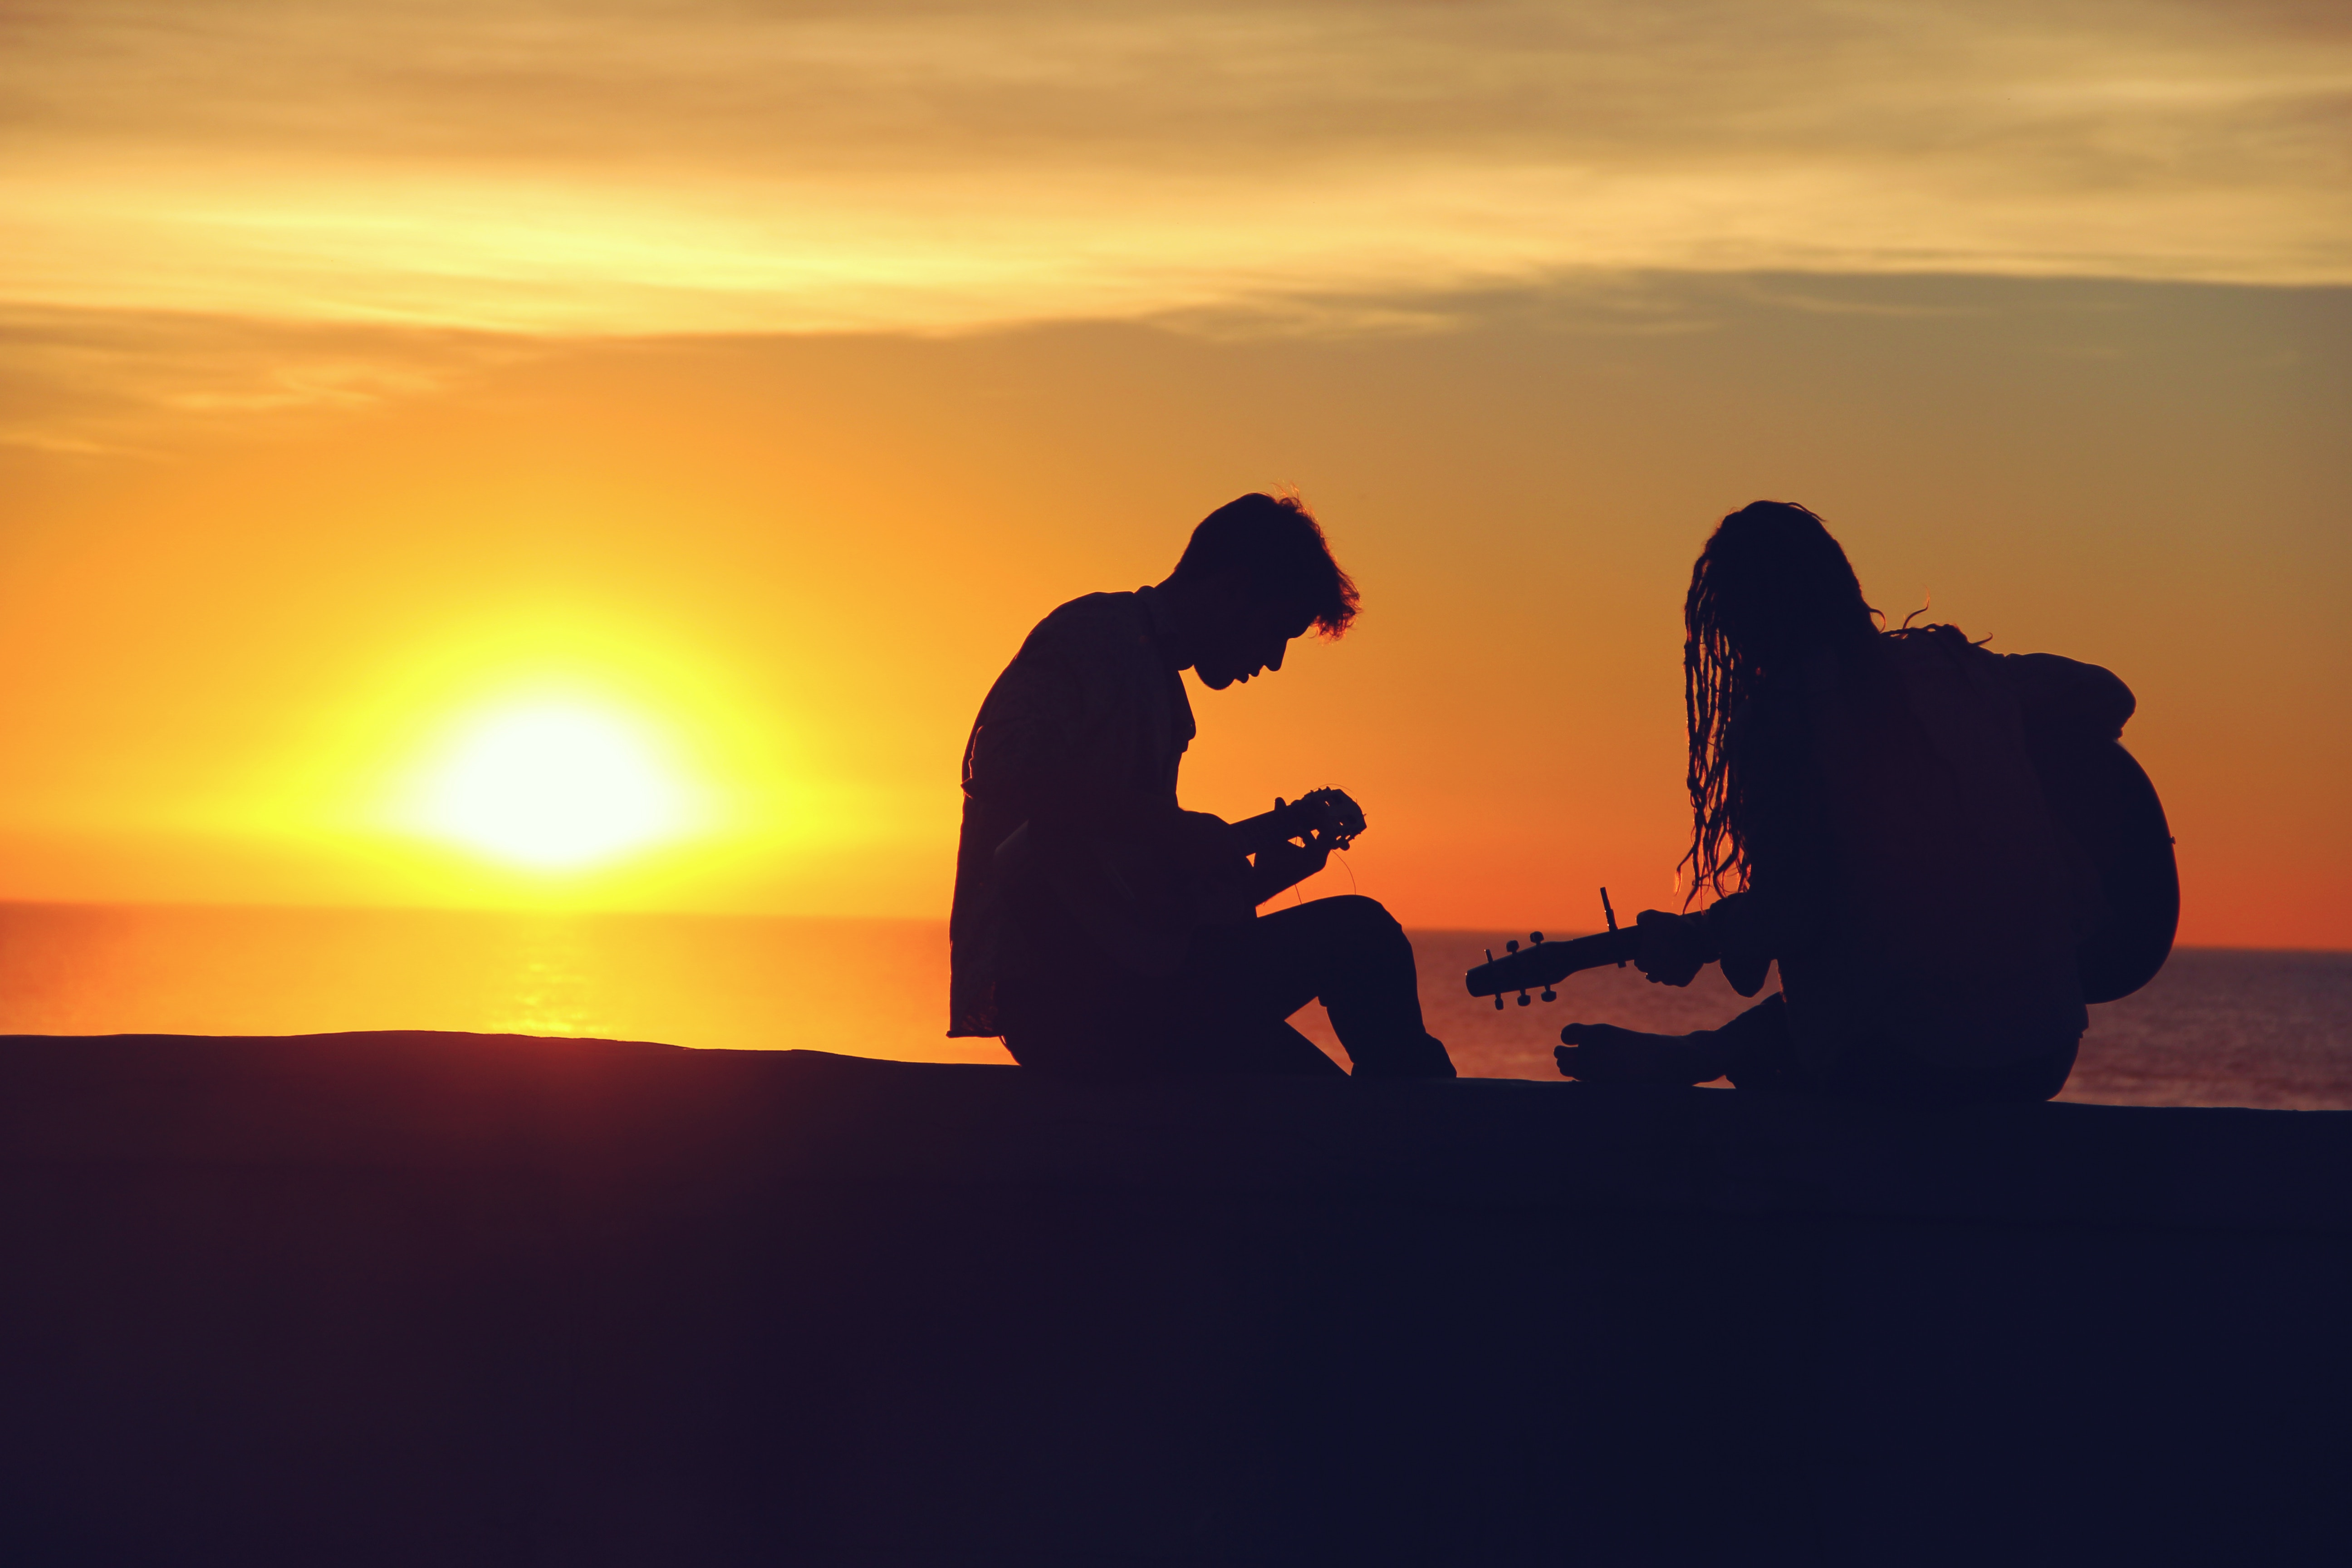 Young couple playing guitar in sunset